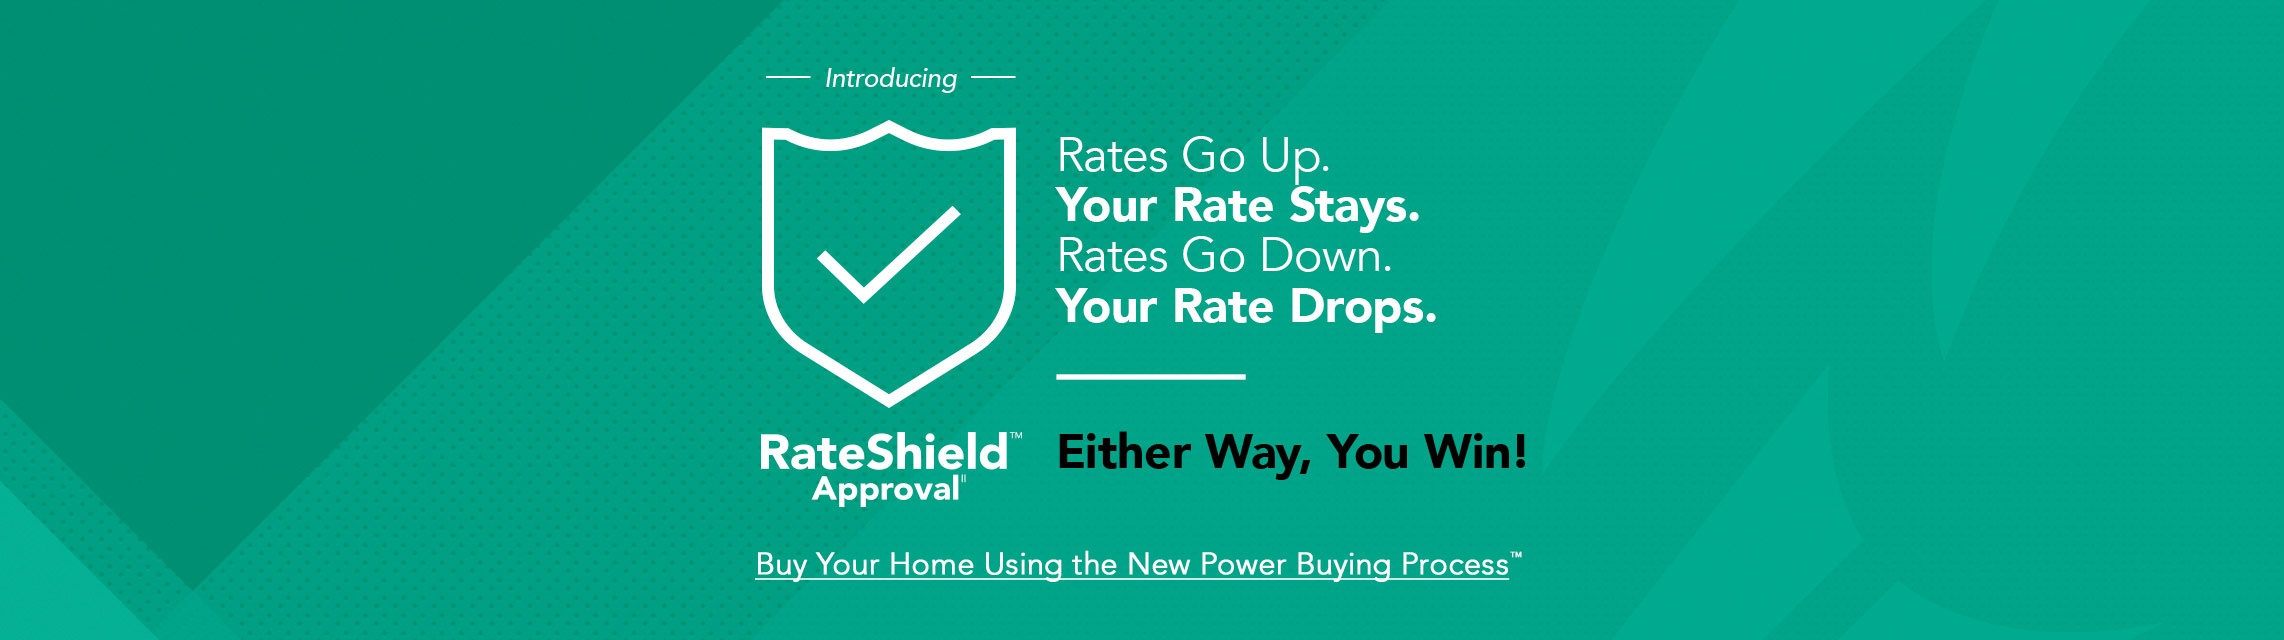 Introducing RateShield Approval. If rates go up, your rate stays the same. If rates go down, your rate drops. Either way, you win! Buy your home using the new Power Buying Process.